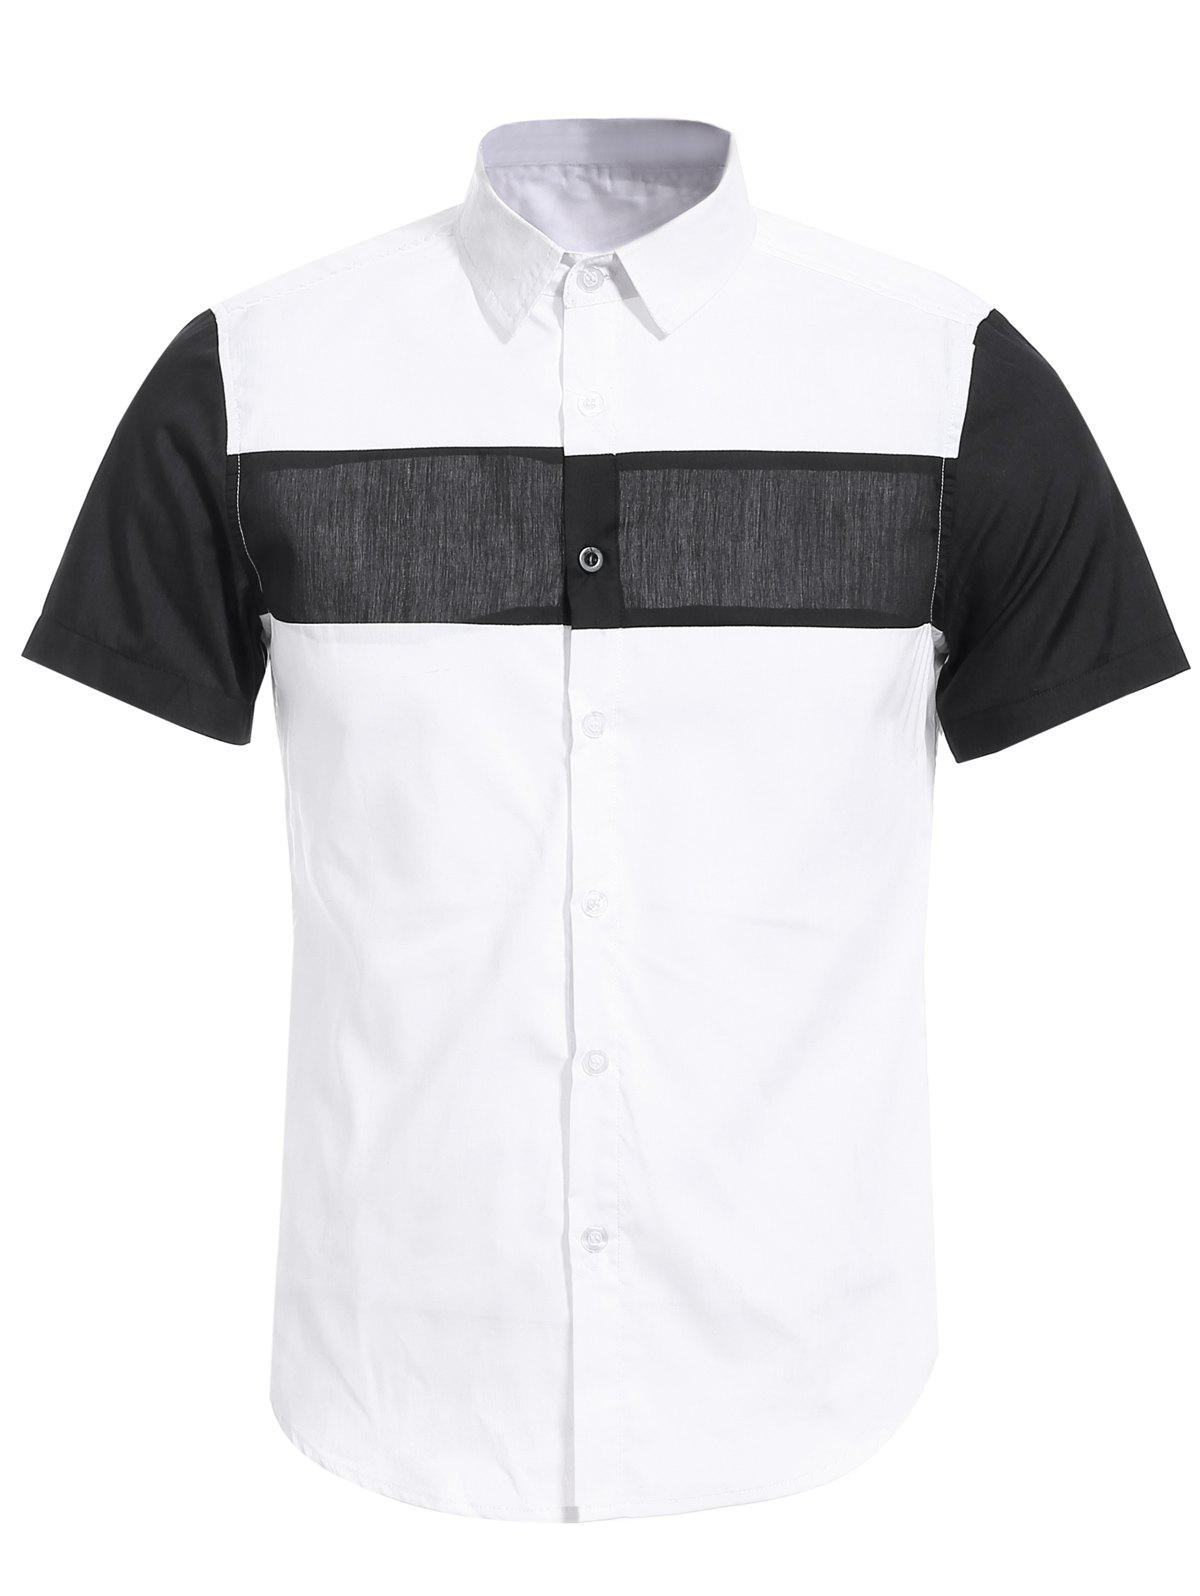 Vogue Shirt Collar White and Black Spliced Men's Short Sleeves Shirt - WHITE M